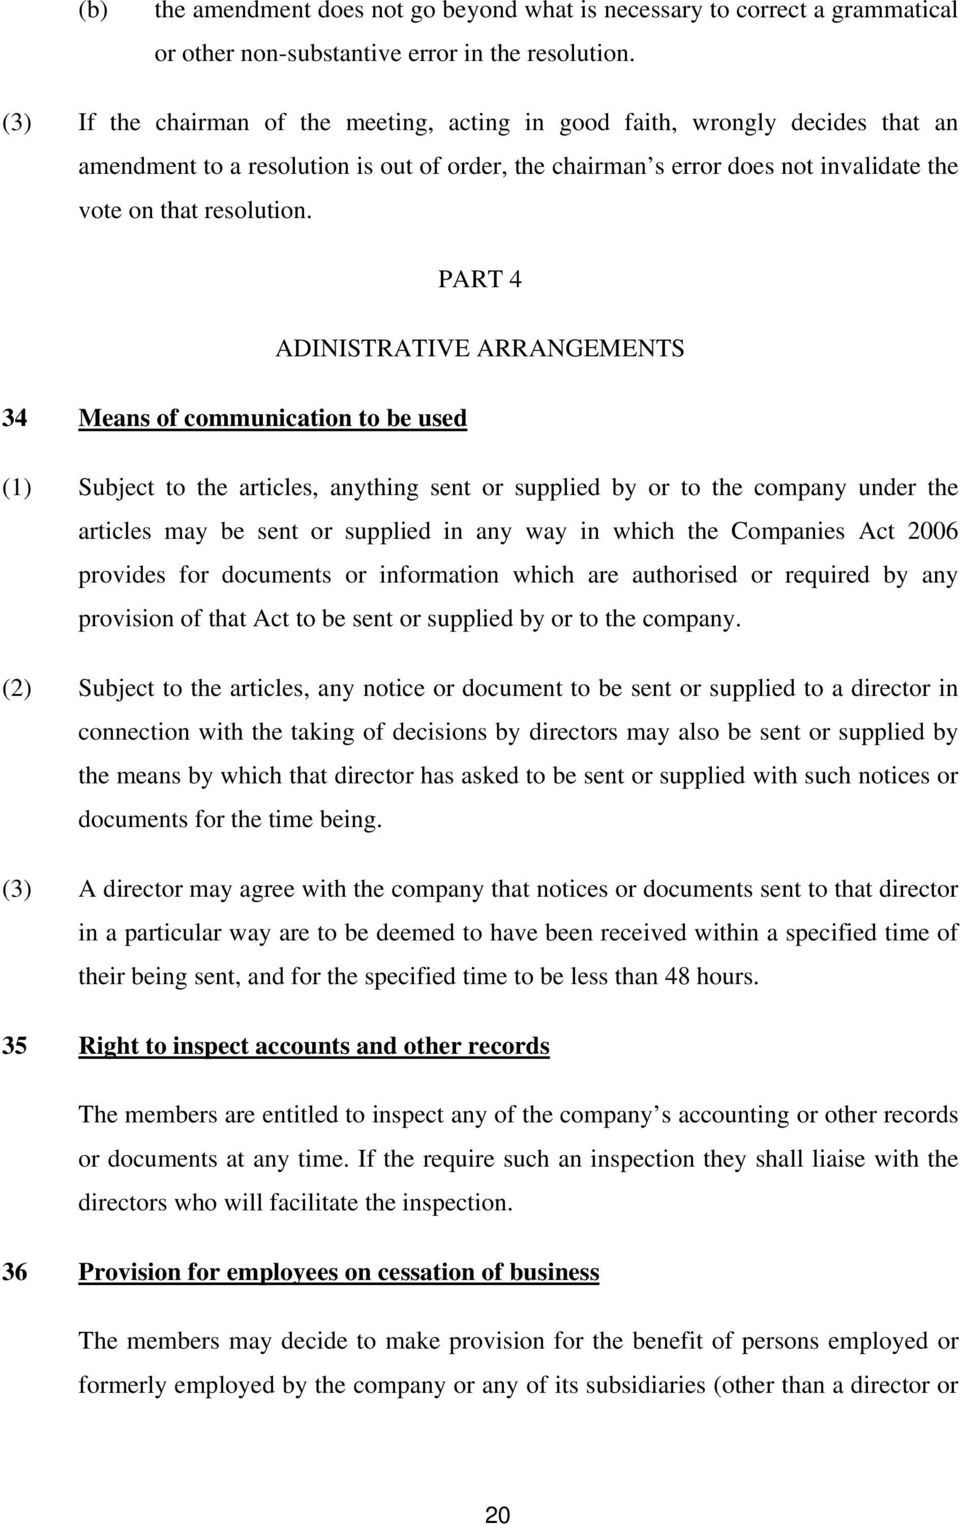 PART 4 ADINISTRATIVE ARRANGEMENTS 34 Means of communication to be used (1) Subject to the articles, anything sent or supplied by or to the company under the articles may be sent or supplied in any